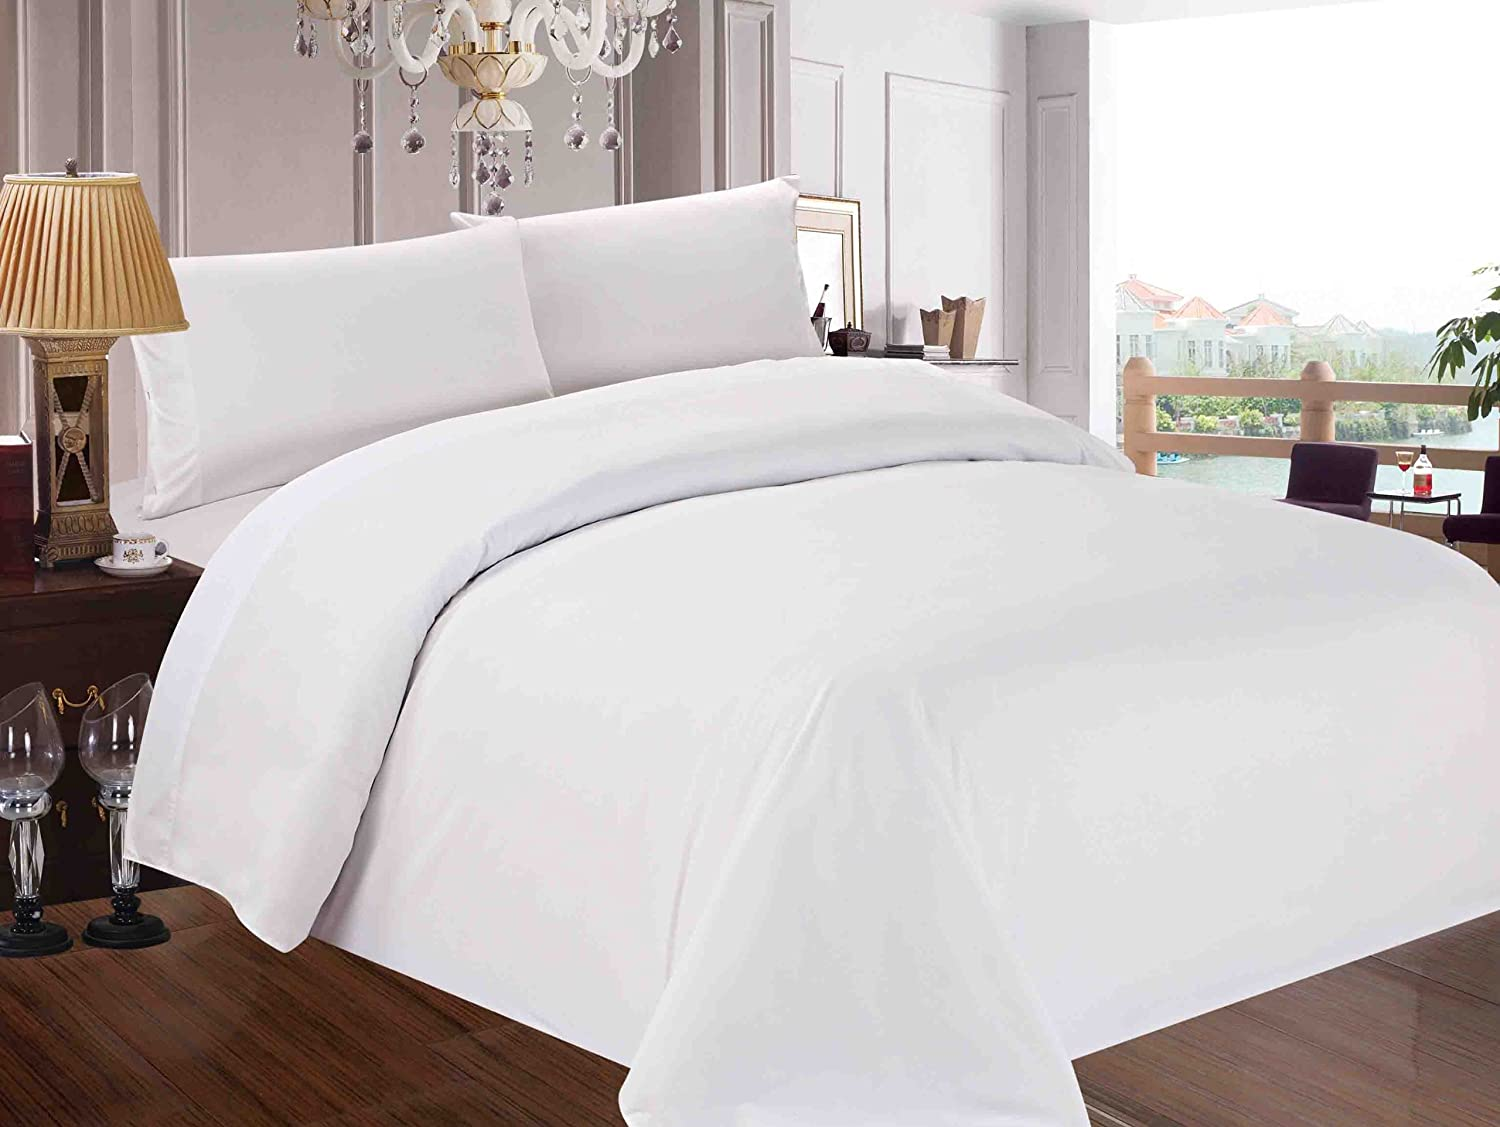 Amazon com  Red Nomad Luxury Duvet Cover   Sham Set  3 Piece  Full Queen   White  Home   Kitchen. Amazon com  Red Nomad Luxury Duvet Cover   Sham Set  3 Piece  Full